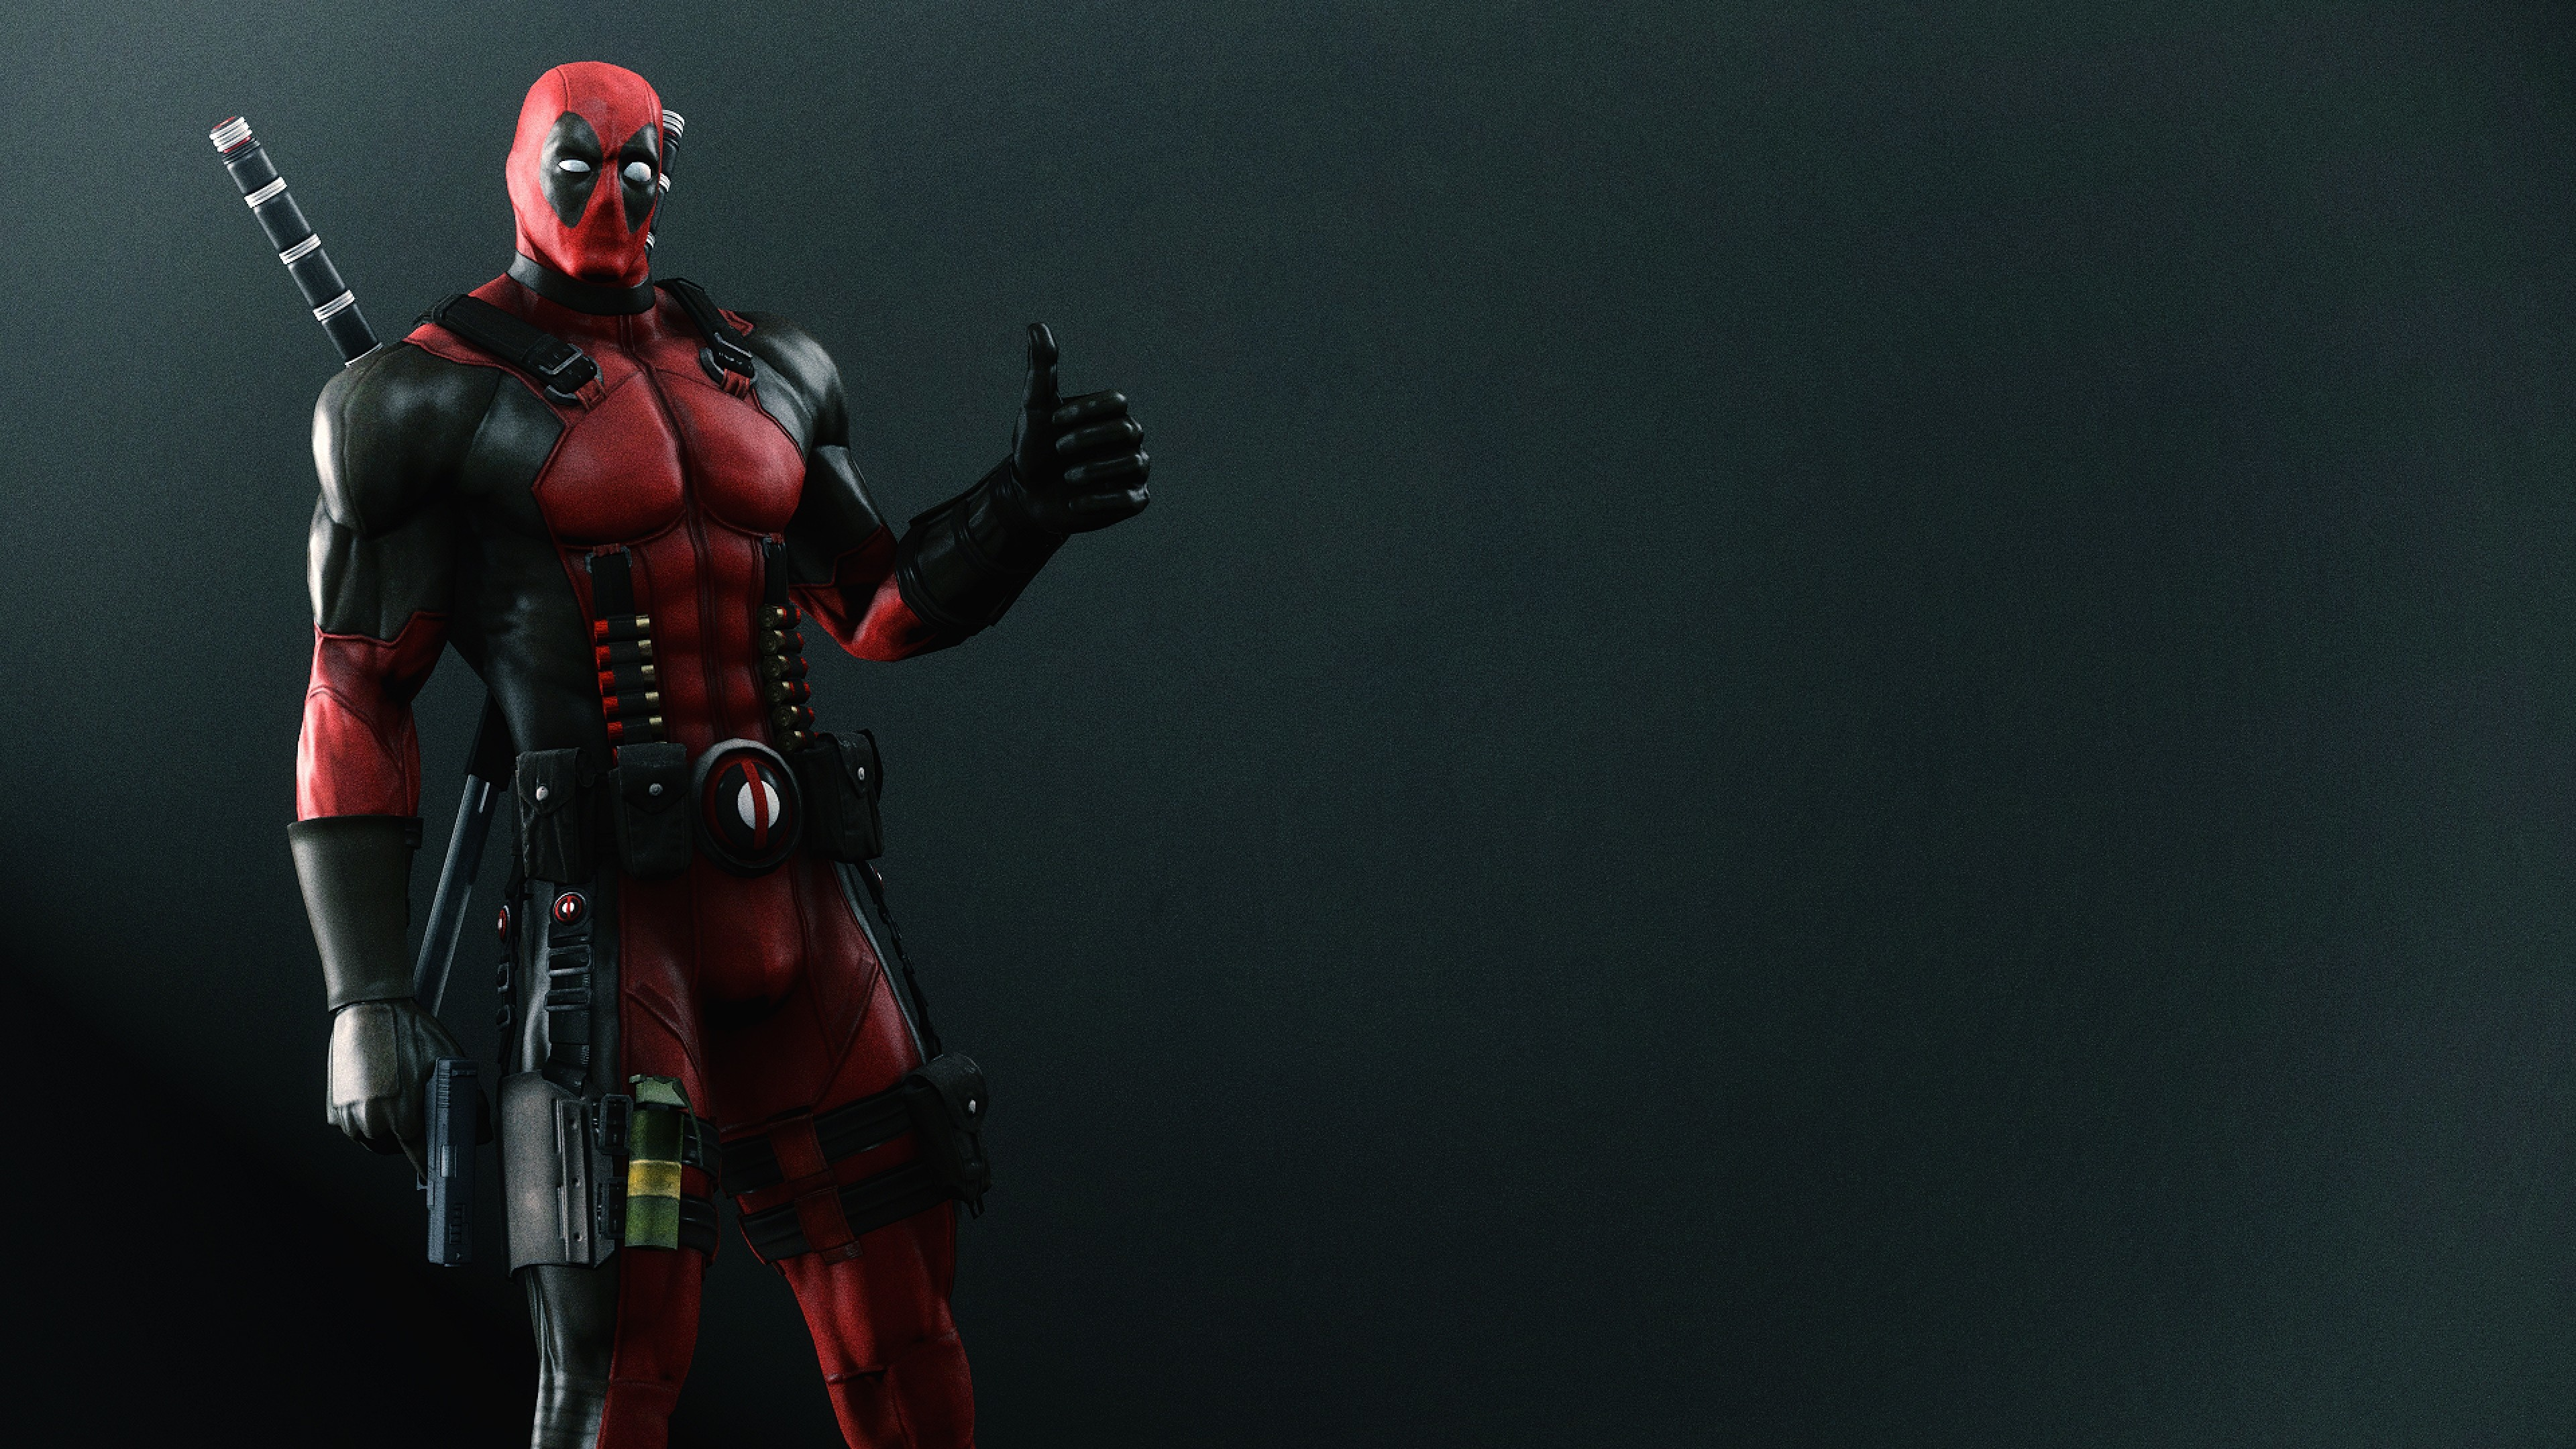 Free Download 70 4k Deadpool Wallpapers On Wallpaperplay 3840x2160 For Your Desktop Mobile Tablet Explore 23 Deadpool 2 4k Wallpapers Deadpool 2 4k Wallpapers 4k Deadpool Wallpaper Deadpool 4k Wallpaper